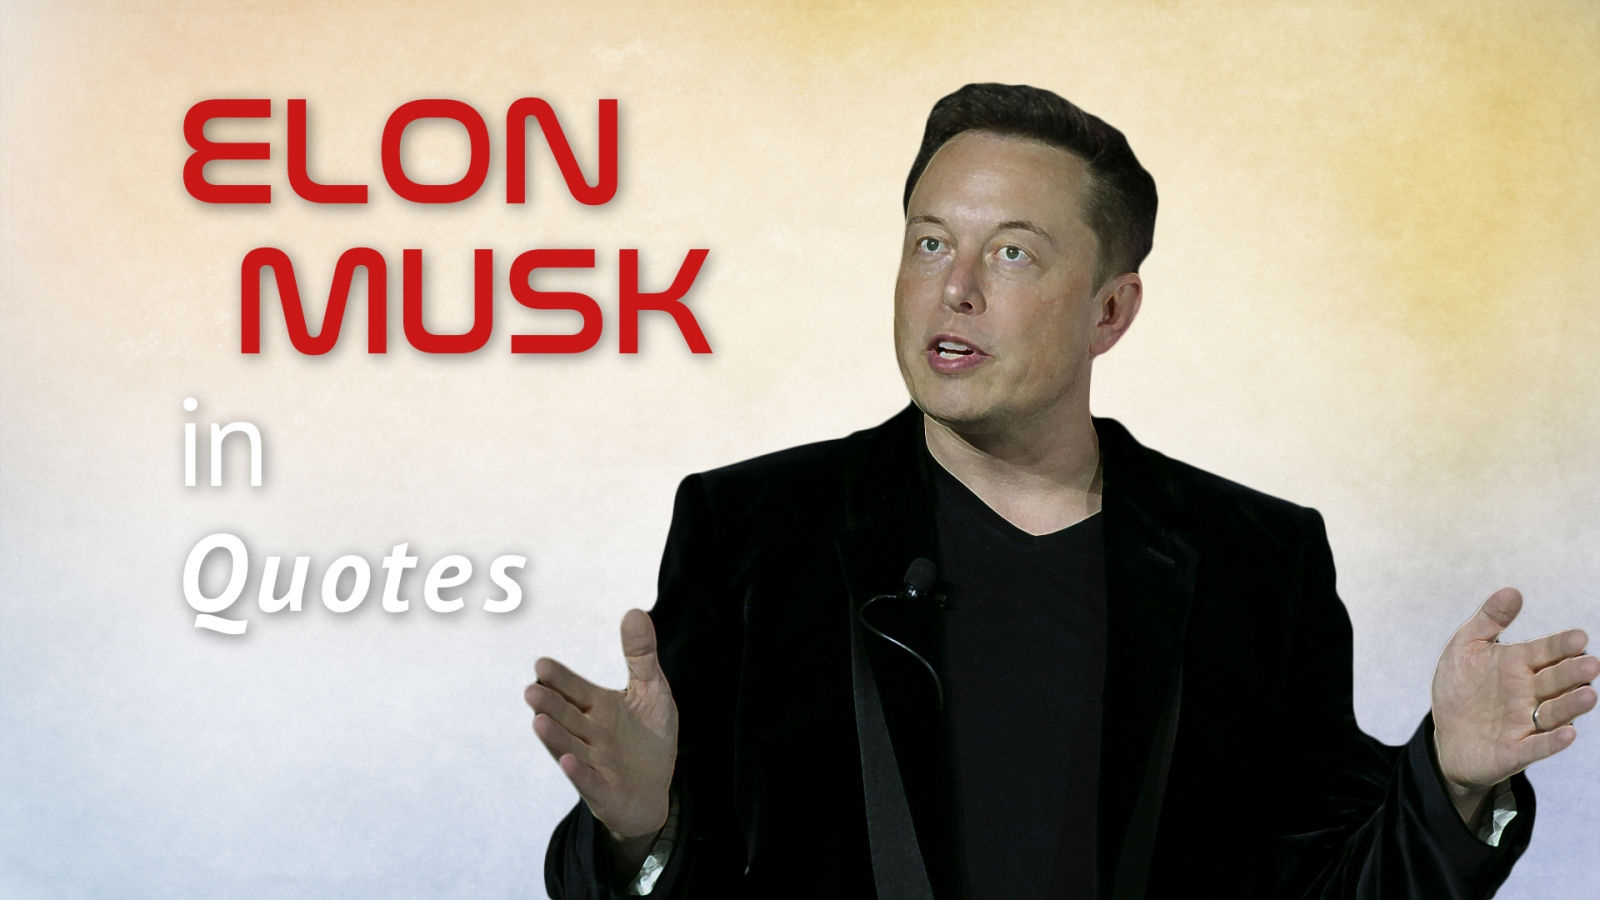 Elon Musk Quotes: Elon Musk Fires Back At 'bogus' Claim He Sacked Assistant